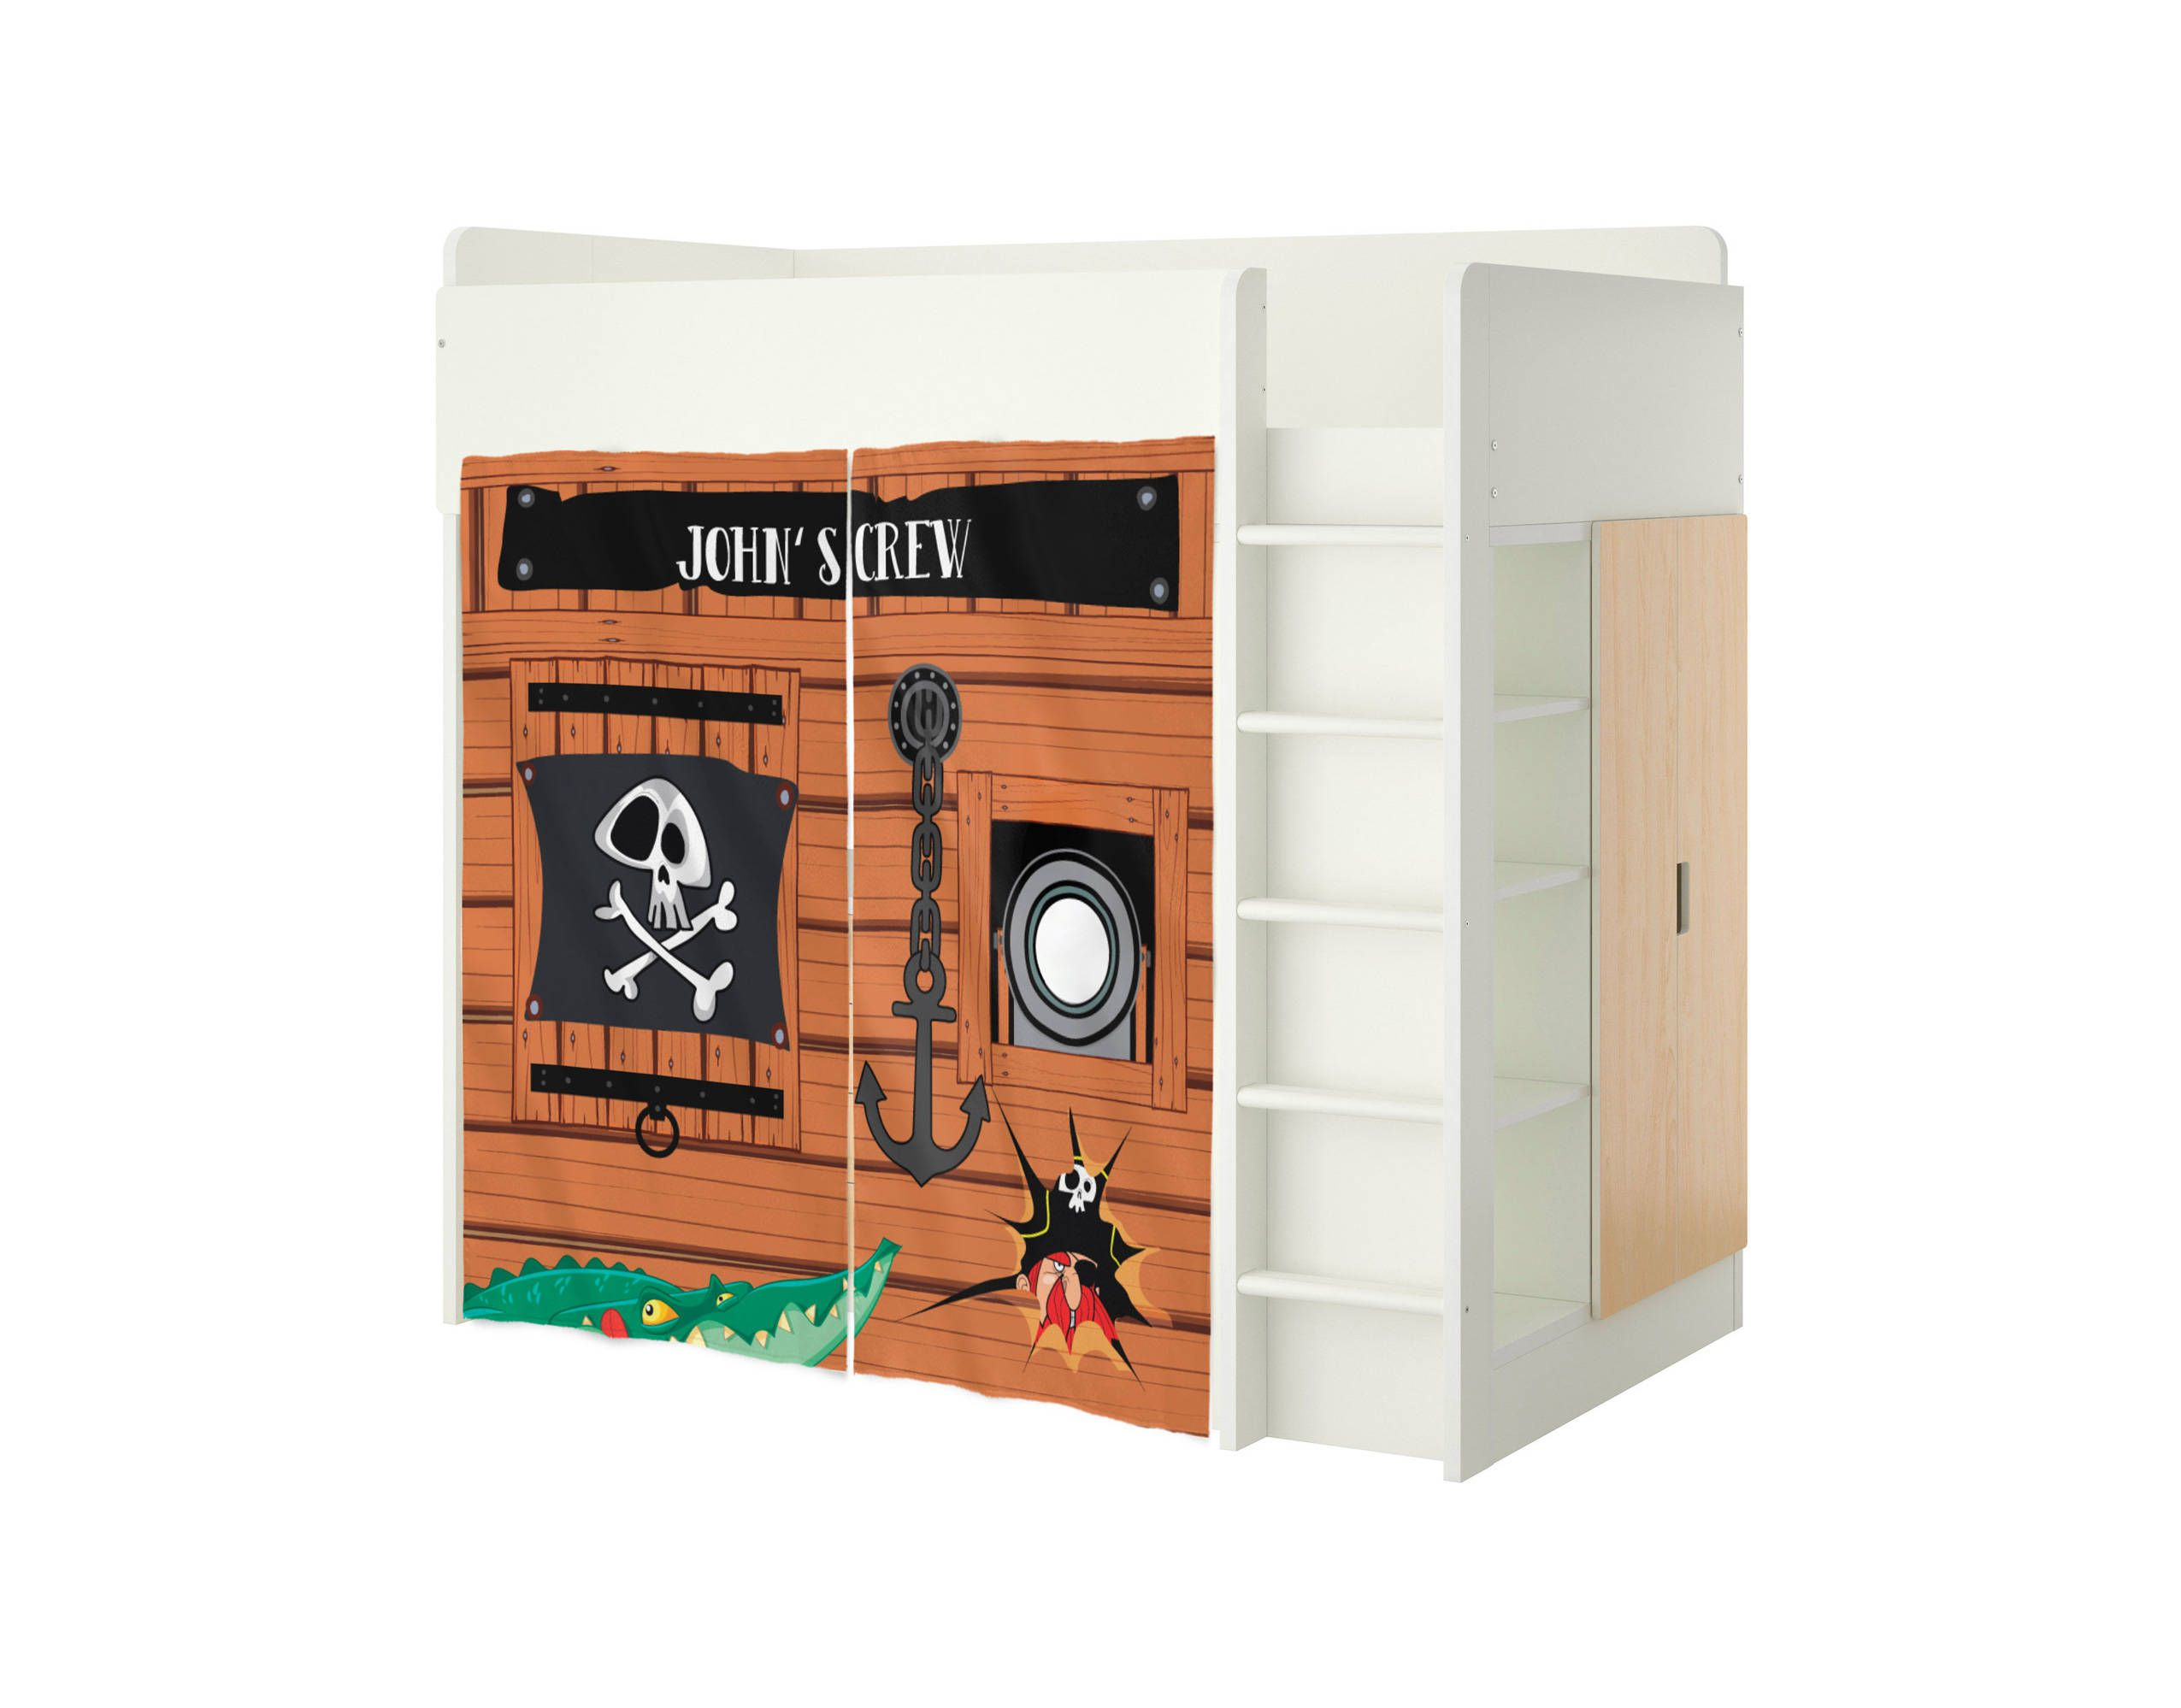 Custom Playhouse for Ikea Stuva Bed Pirates Playhouse Curtains Loft Bed Stuva Bed Tent Bunk Bed Accessories House Loft Bed Curtains  sc 1 st  Pinterest & Custom Playhouse for Ikea Stuva Bed Pirates Playhouse Curtains ...